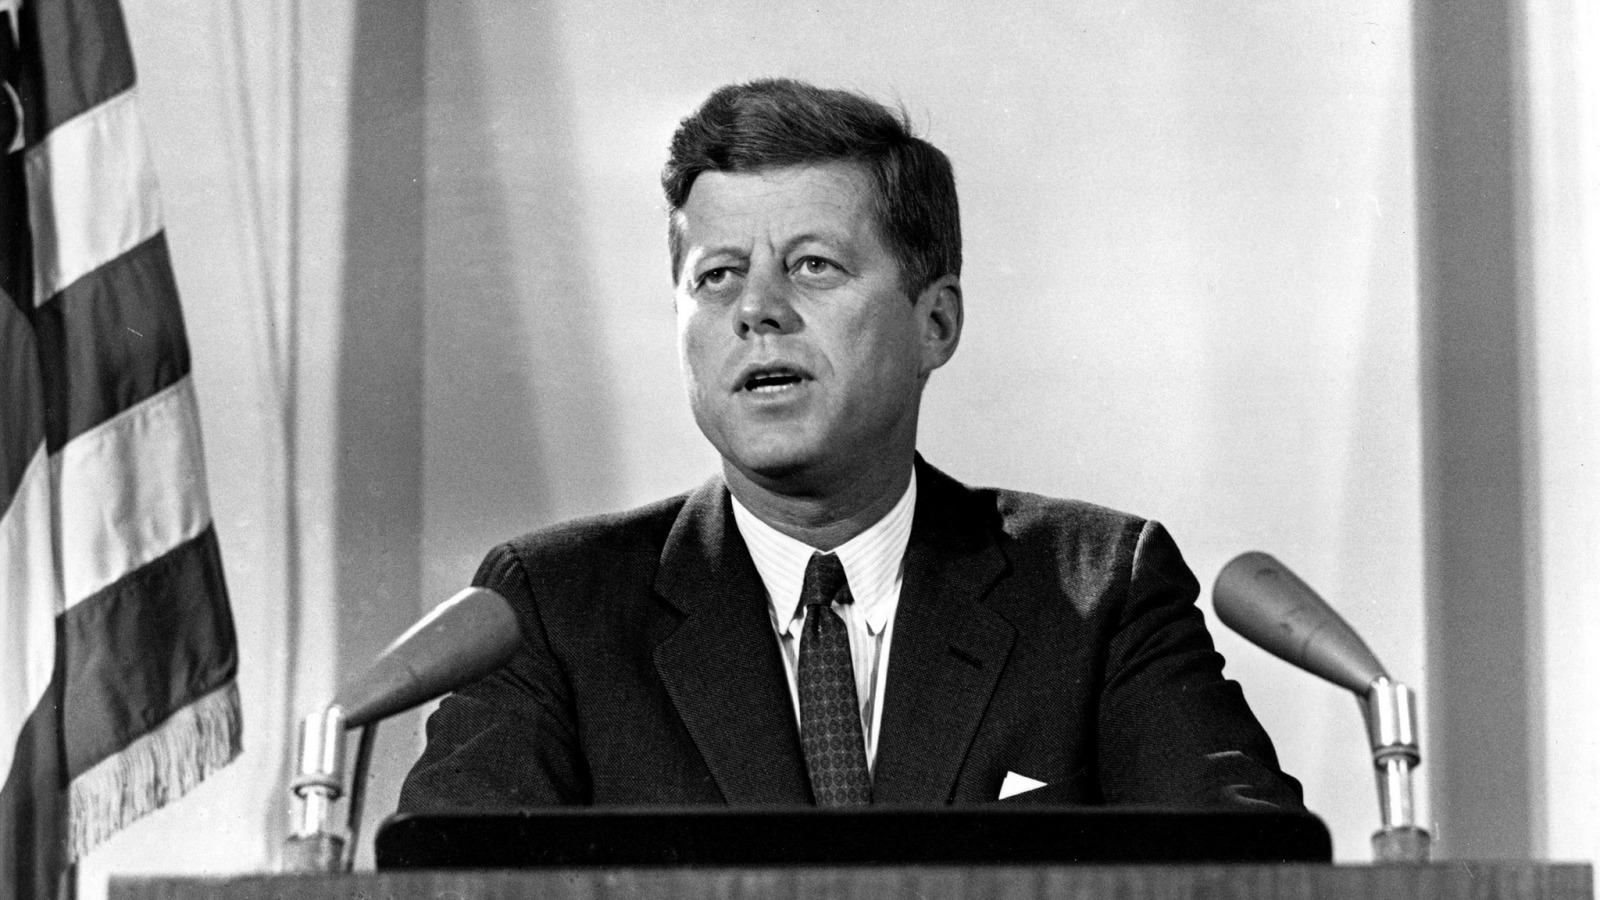 an introduction to the life and legacy of the president john f kennedy Homeschool resources for studying about john f kennedy including come tour our museum which portrays the life, leadership, and legacy of president.